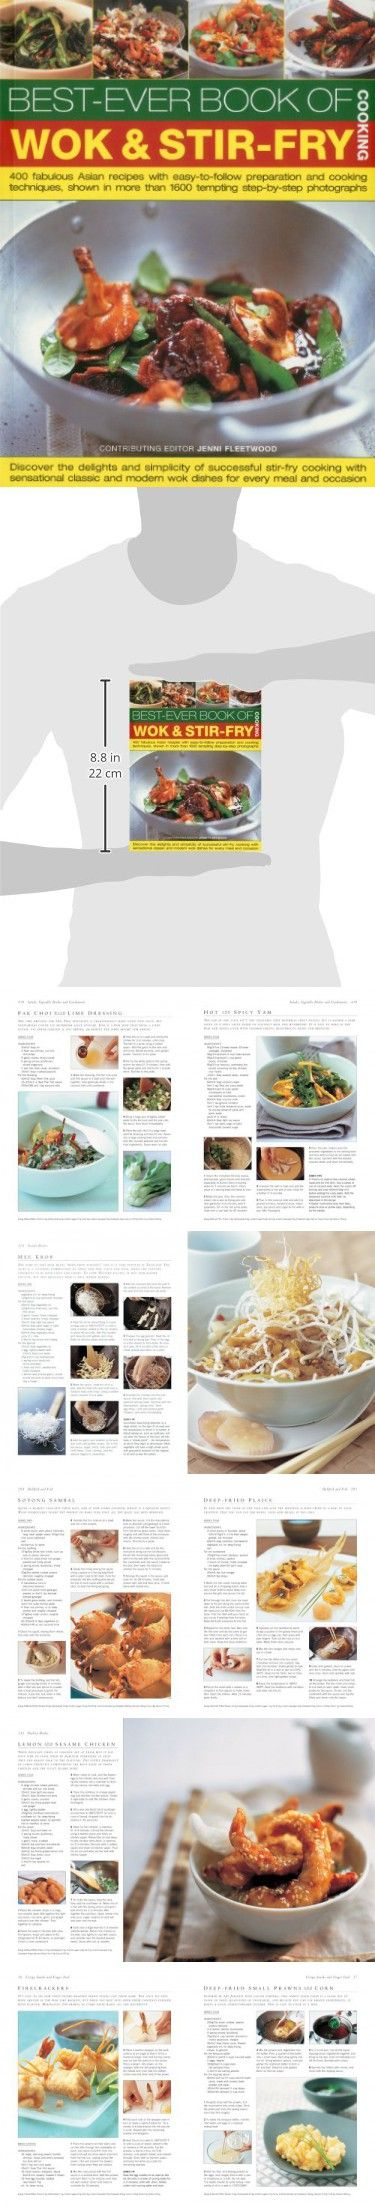 15 best thai cookbooks images on pinterest thai food recipes best ever book of wok stir fry cooking 400 fabulous asian recipes with forumfinder Images